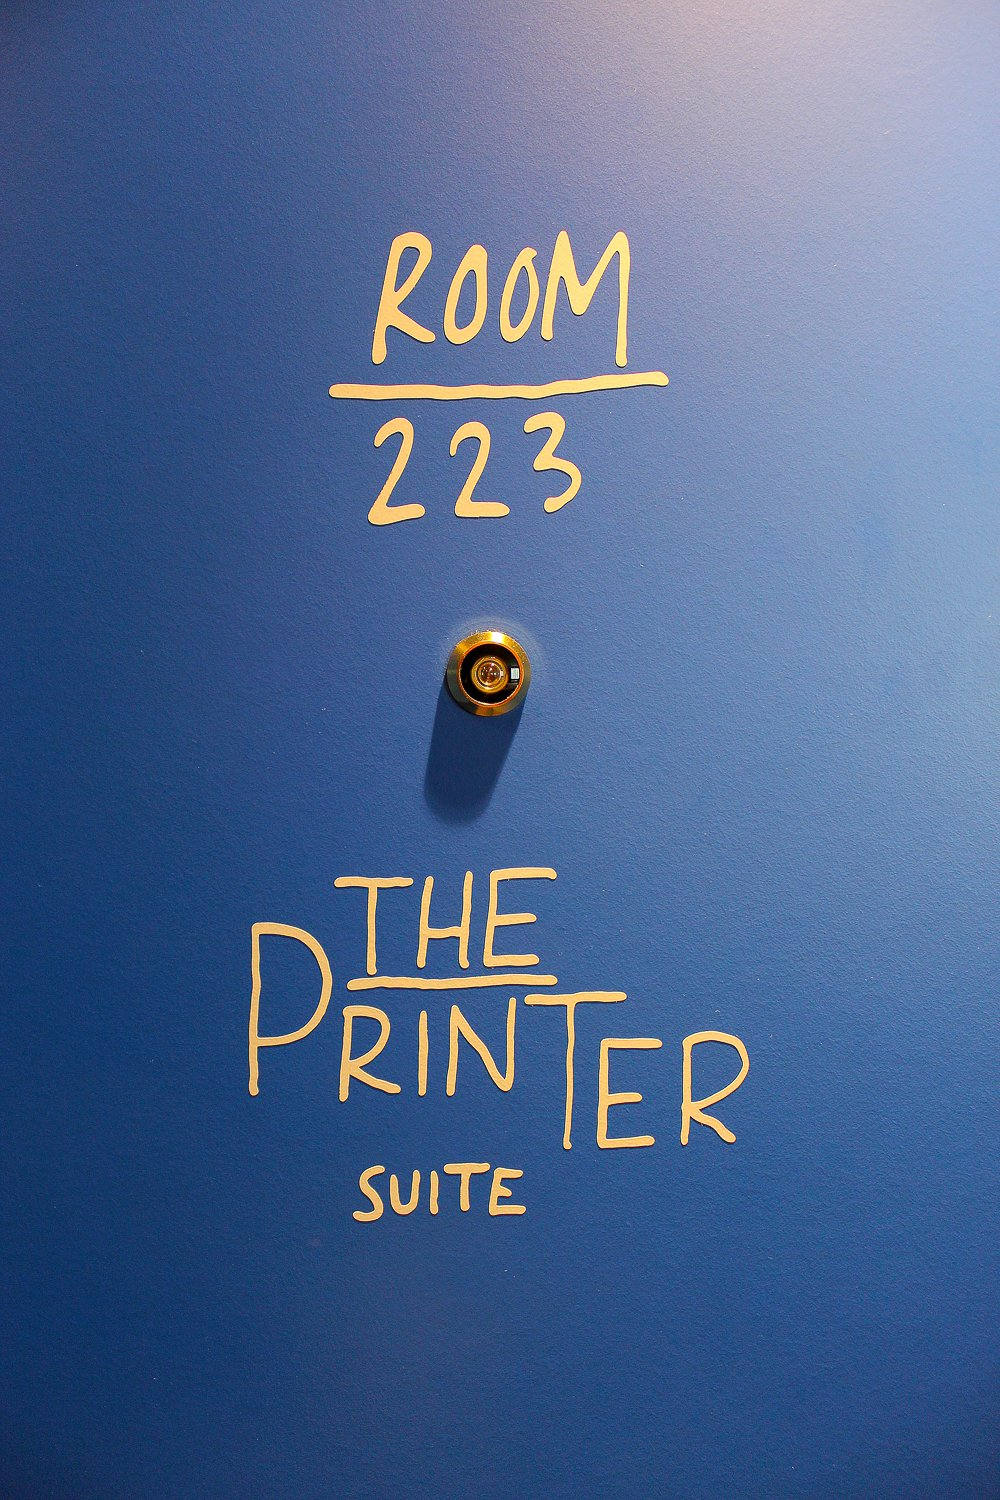 Entrance to The Printer Suite at the Ink Hotel Amsterdam